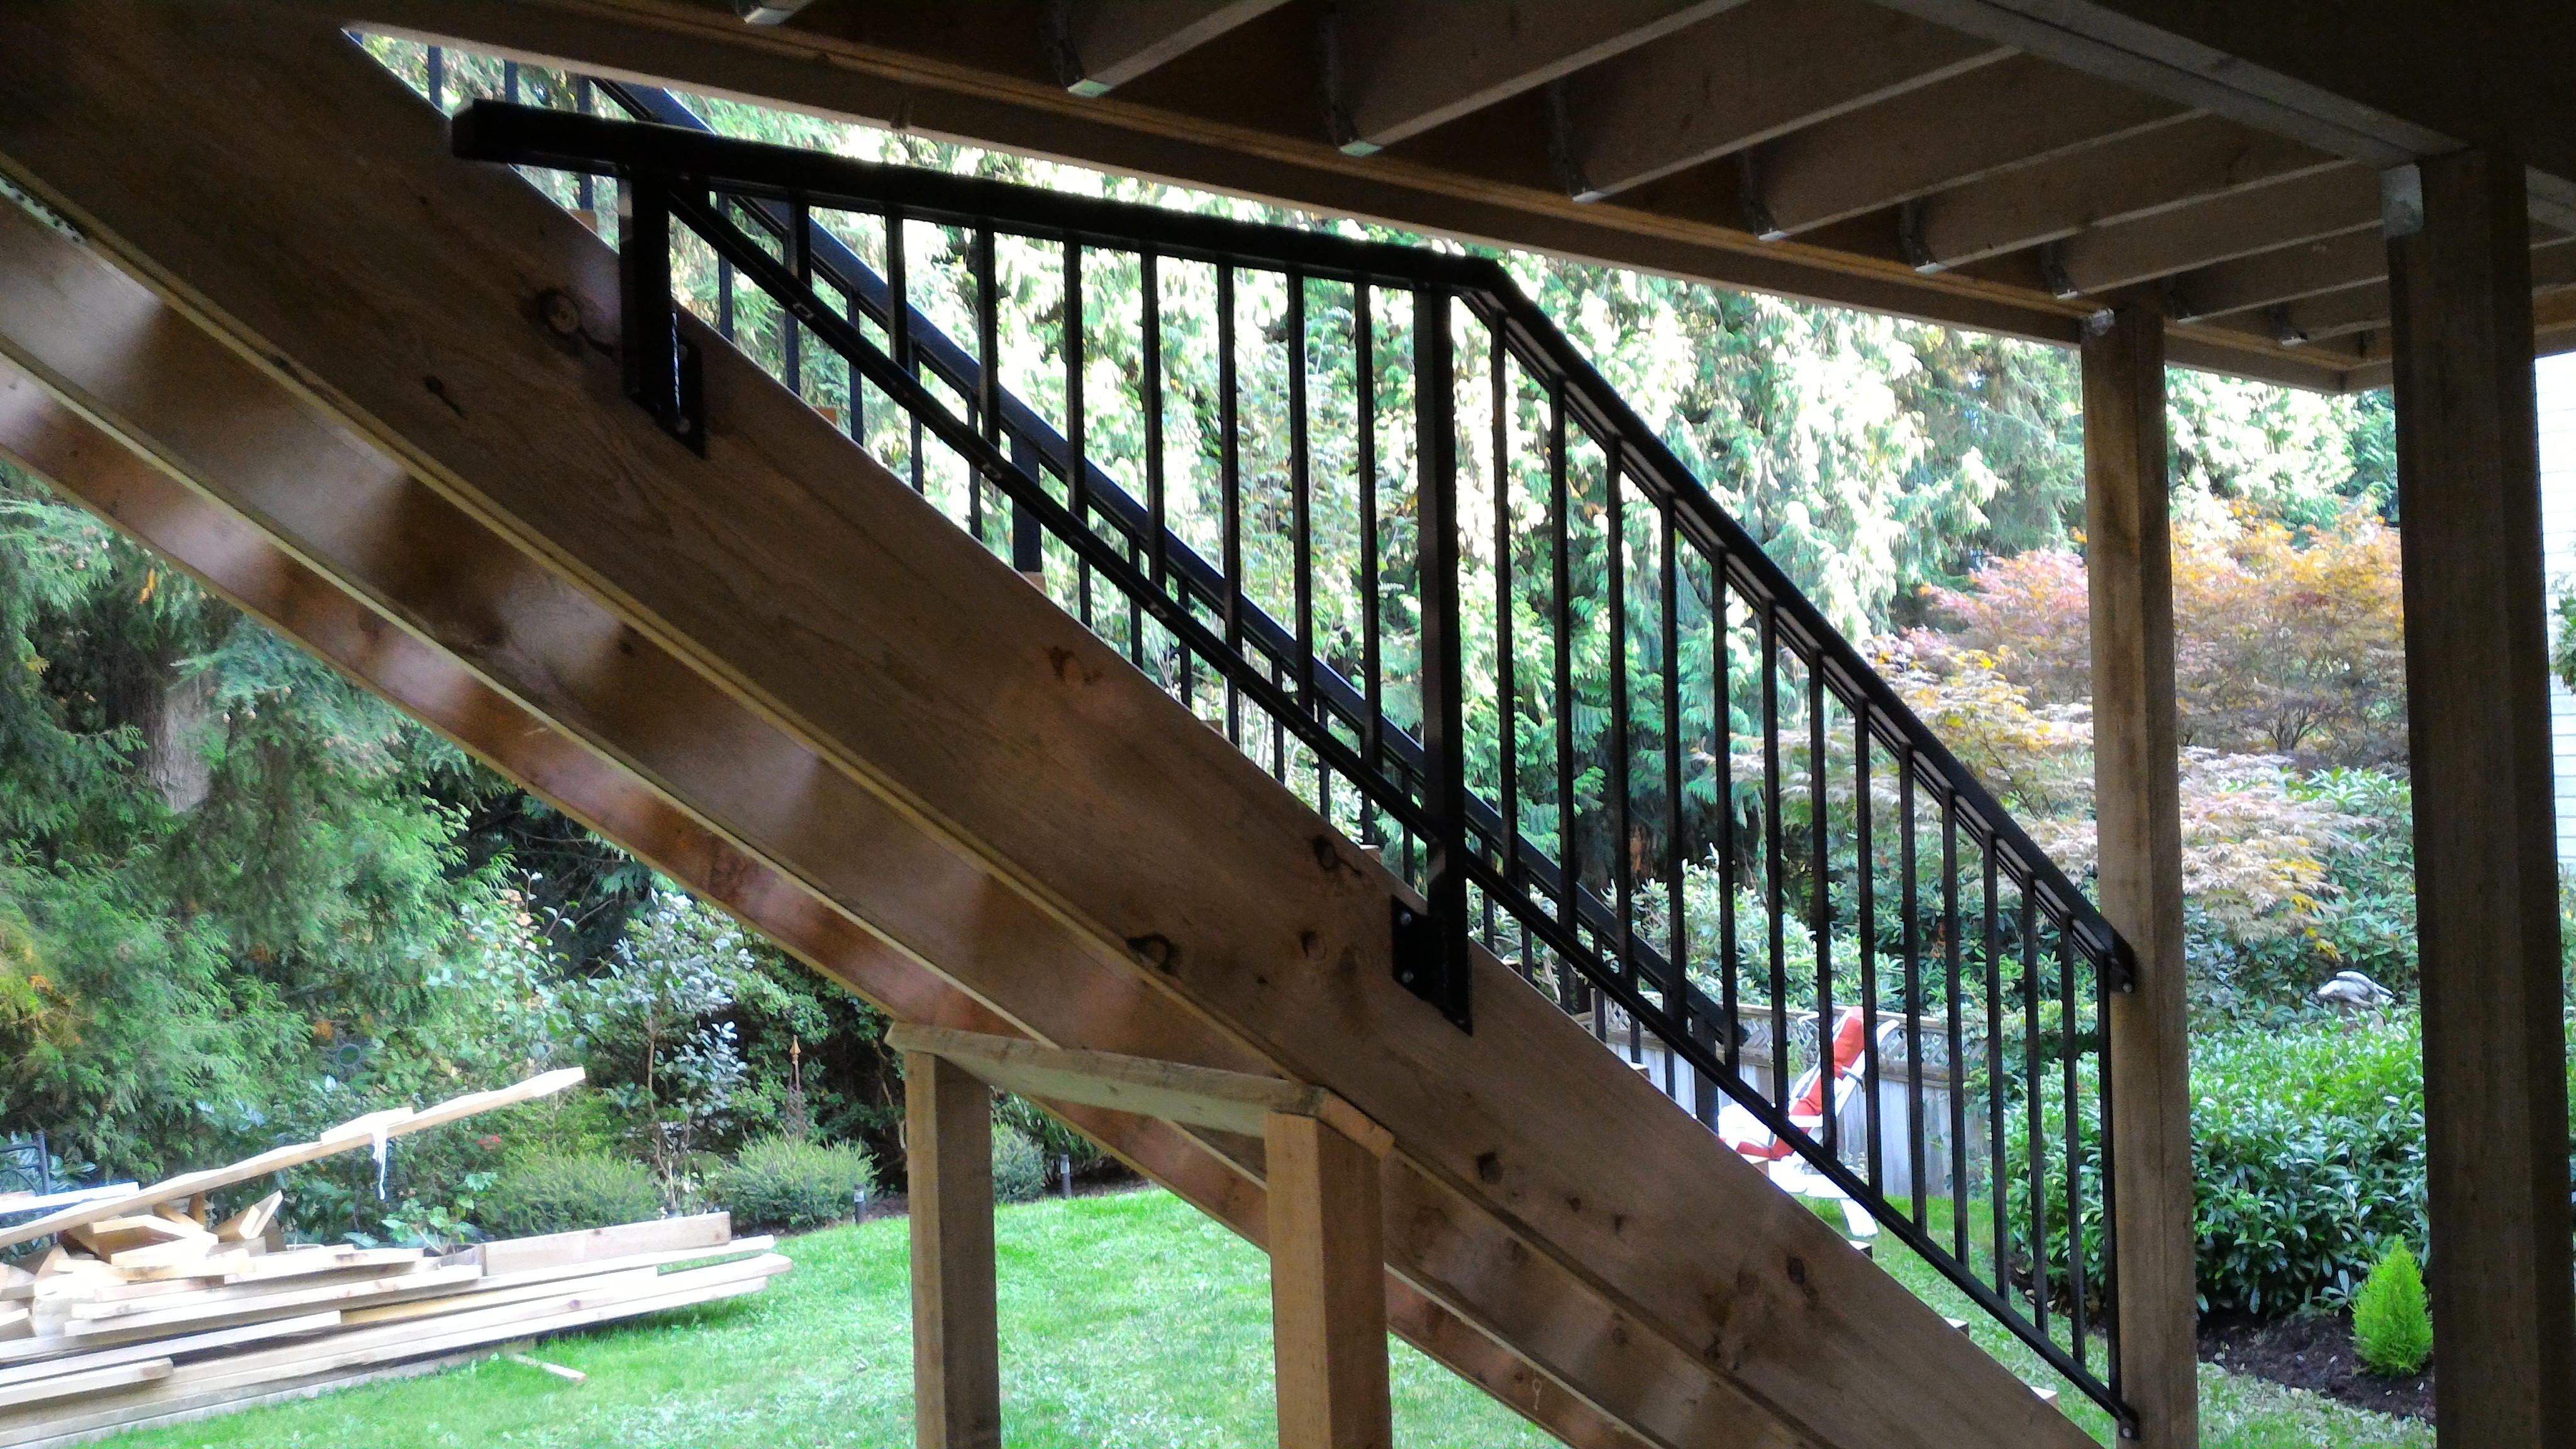 Custom fit railings